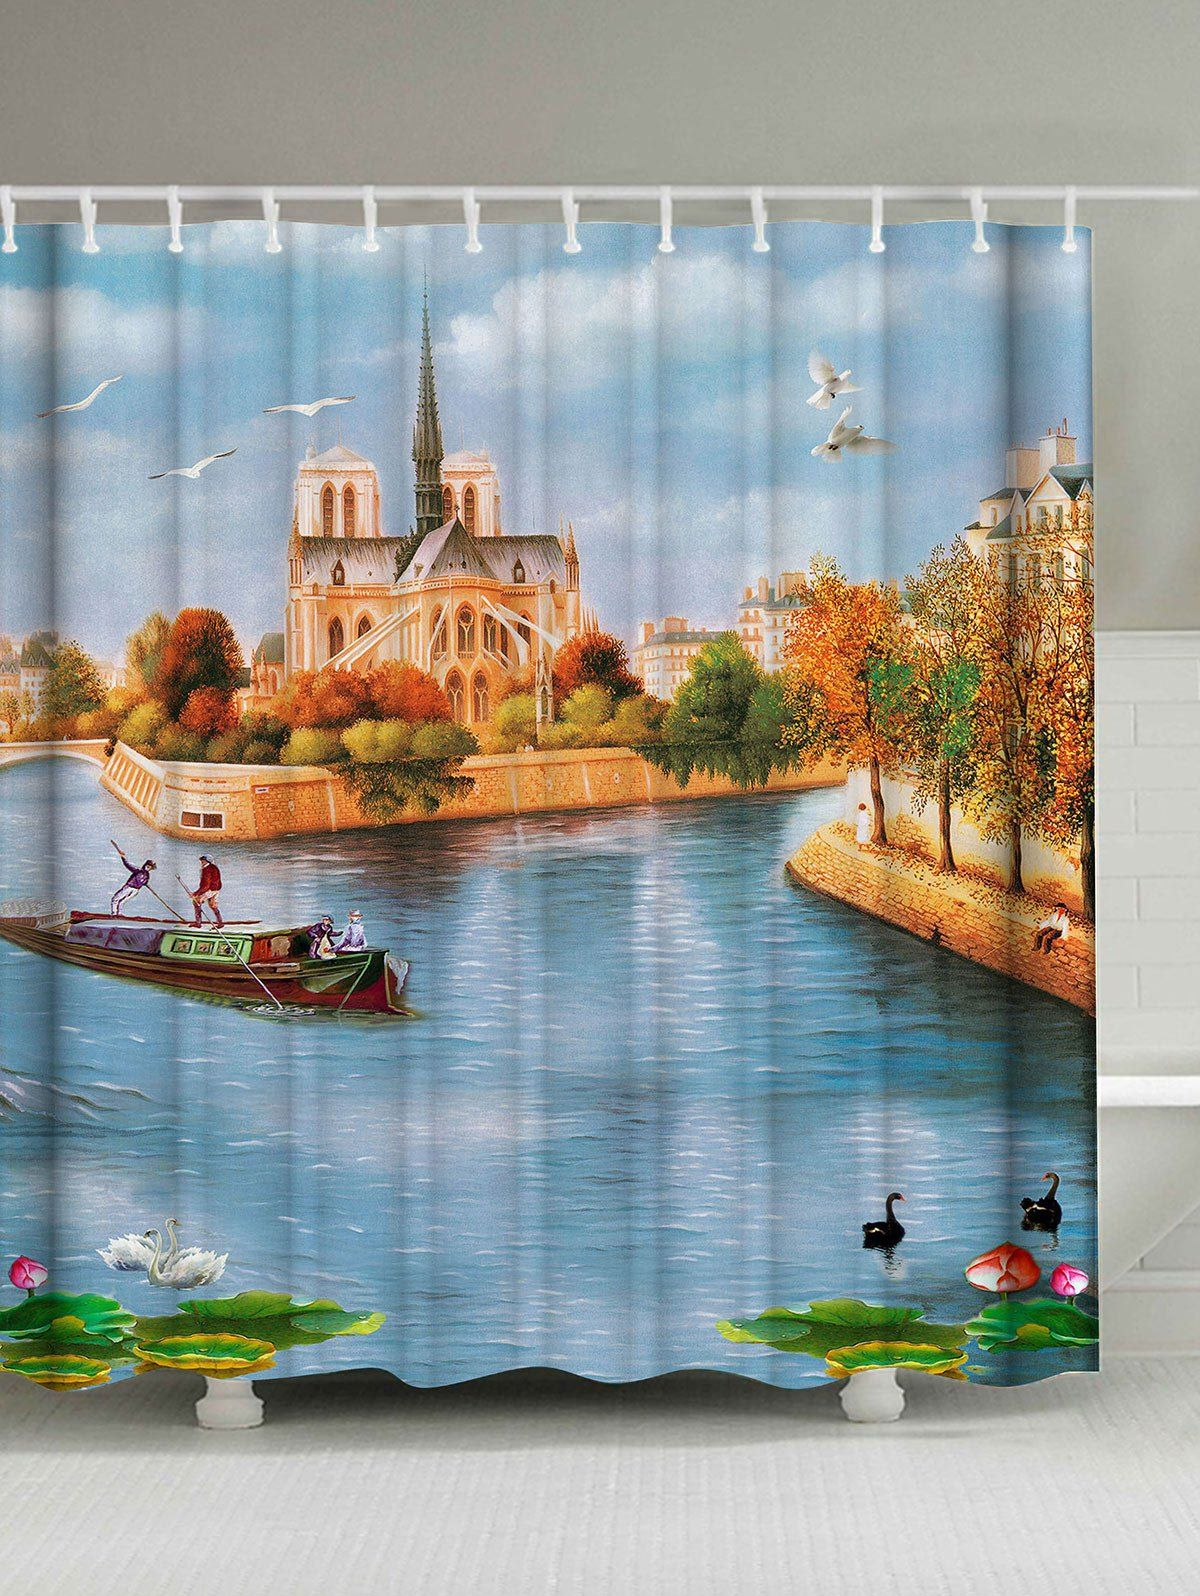 Scenic Oil Painting Waterproof Fabric Shower Curtain Fabric